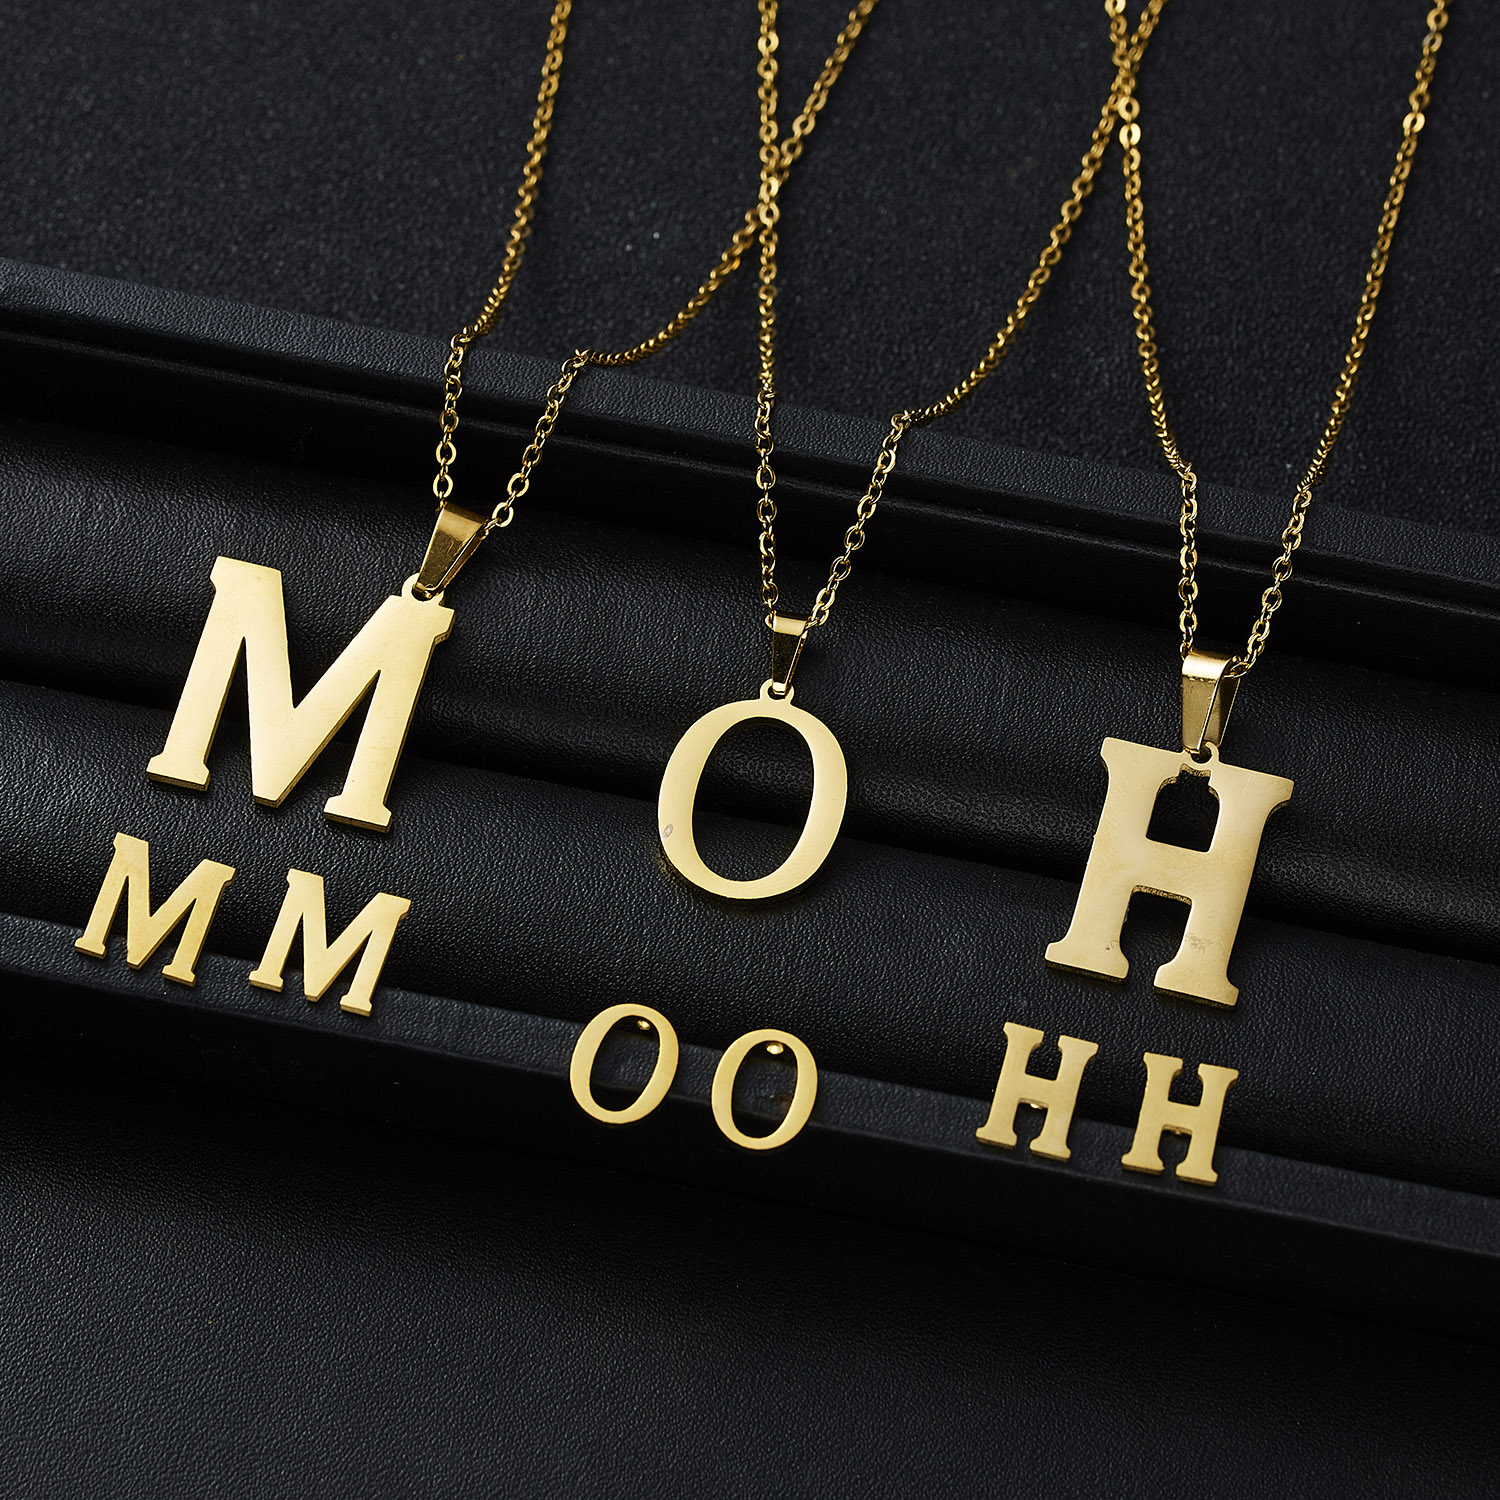 Rinhoo 1Set Gold <font><b>Stainless</b></font> <font><b>Steel</b></font> Letter Shape Pendant Link Chain Necklace and Stud Earring <font><b>For</b></font> <font><b>Women's</b></font> Fashion <font><b>Jewelry</b></font> Gift image